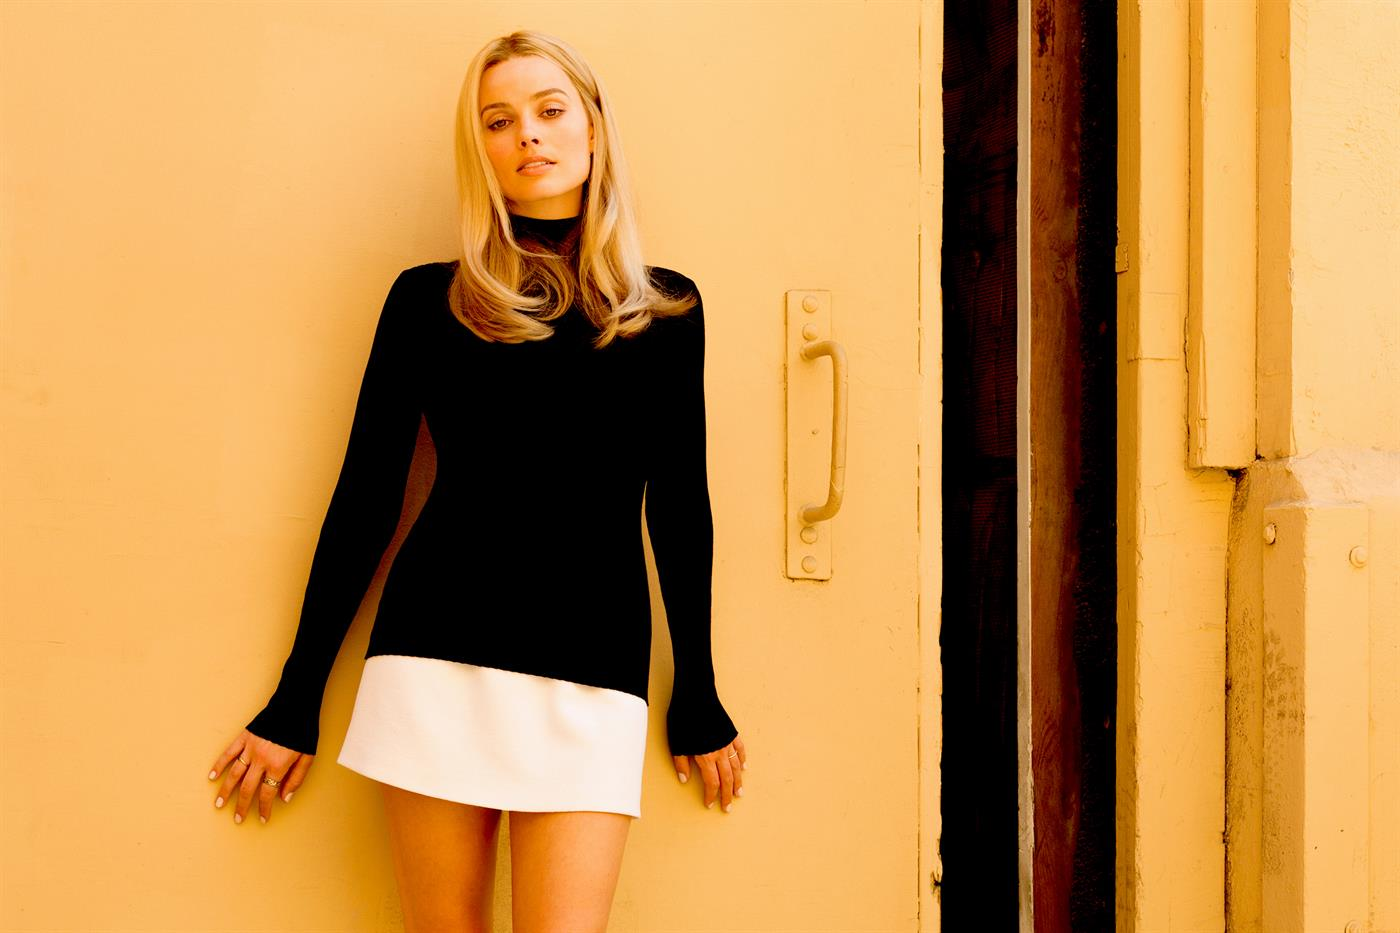 Margot Robbie in the role of Sharon Tate, or the cinema beyond death.